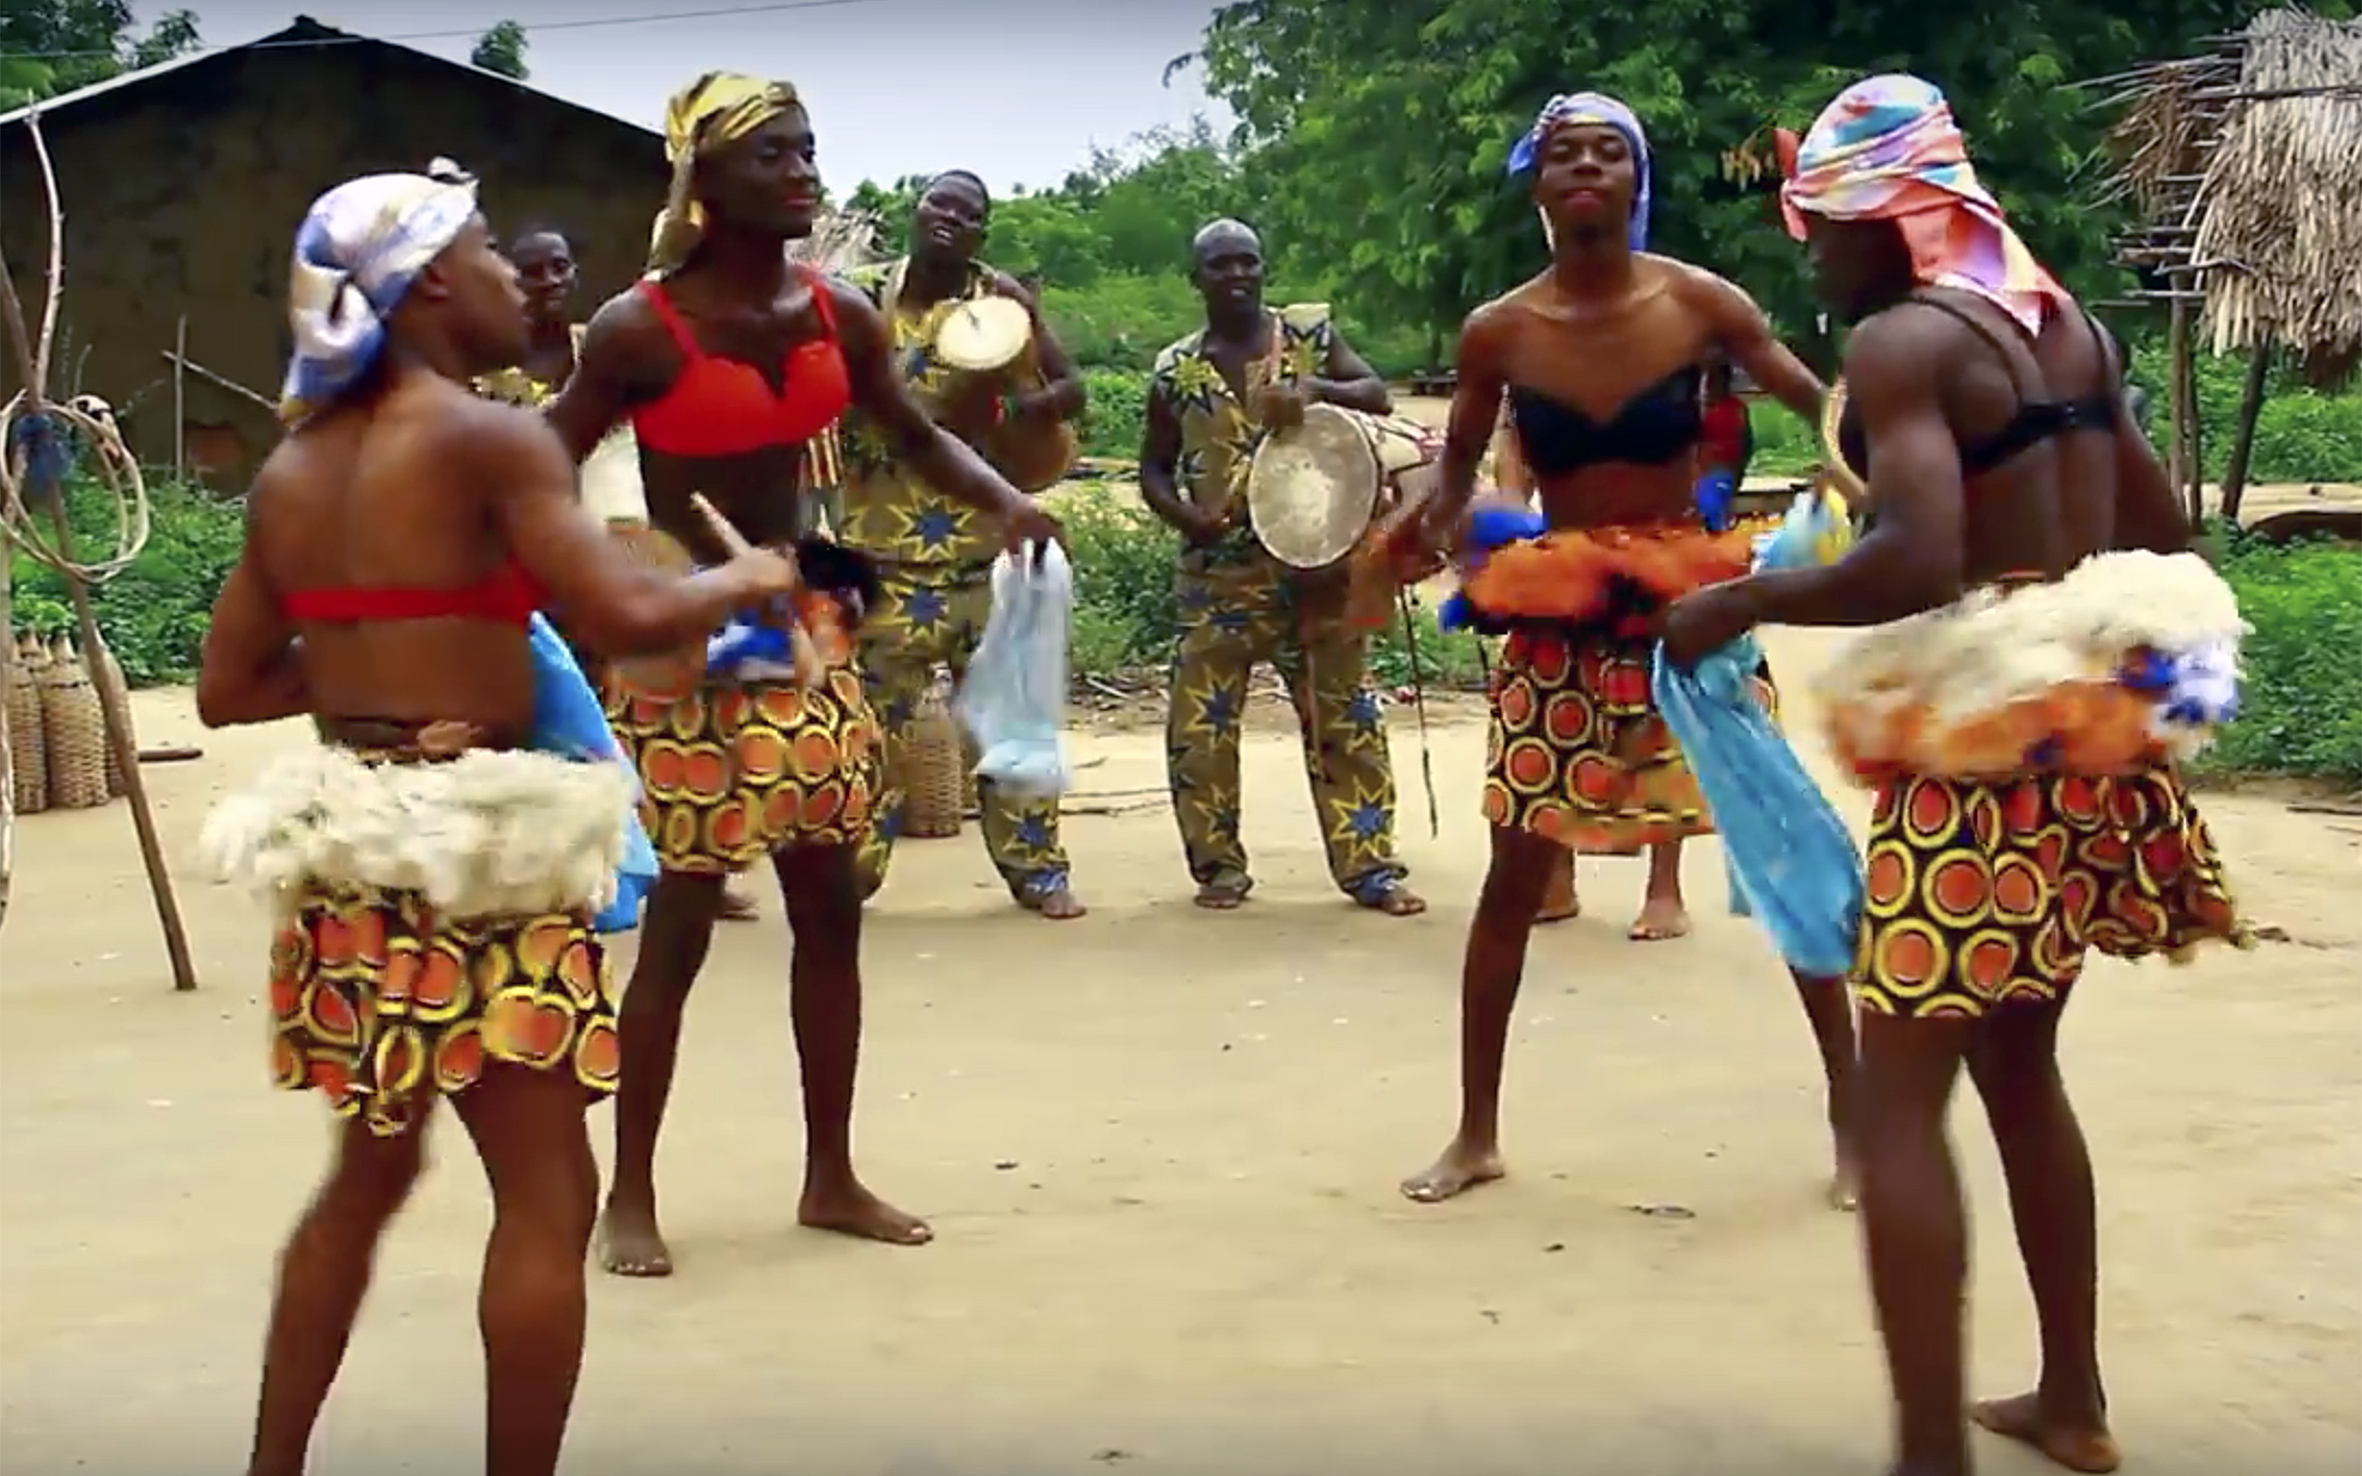 73.BAMAYA / Ghana - BAMAYA is a popular social dance from the northern part of Ghana. It is noted for its gracefulness and controlled gaiety in expressive dance movements.